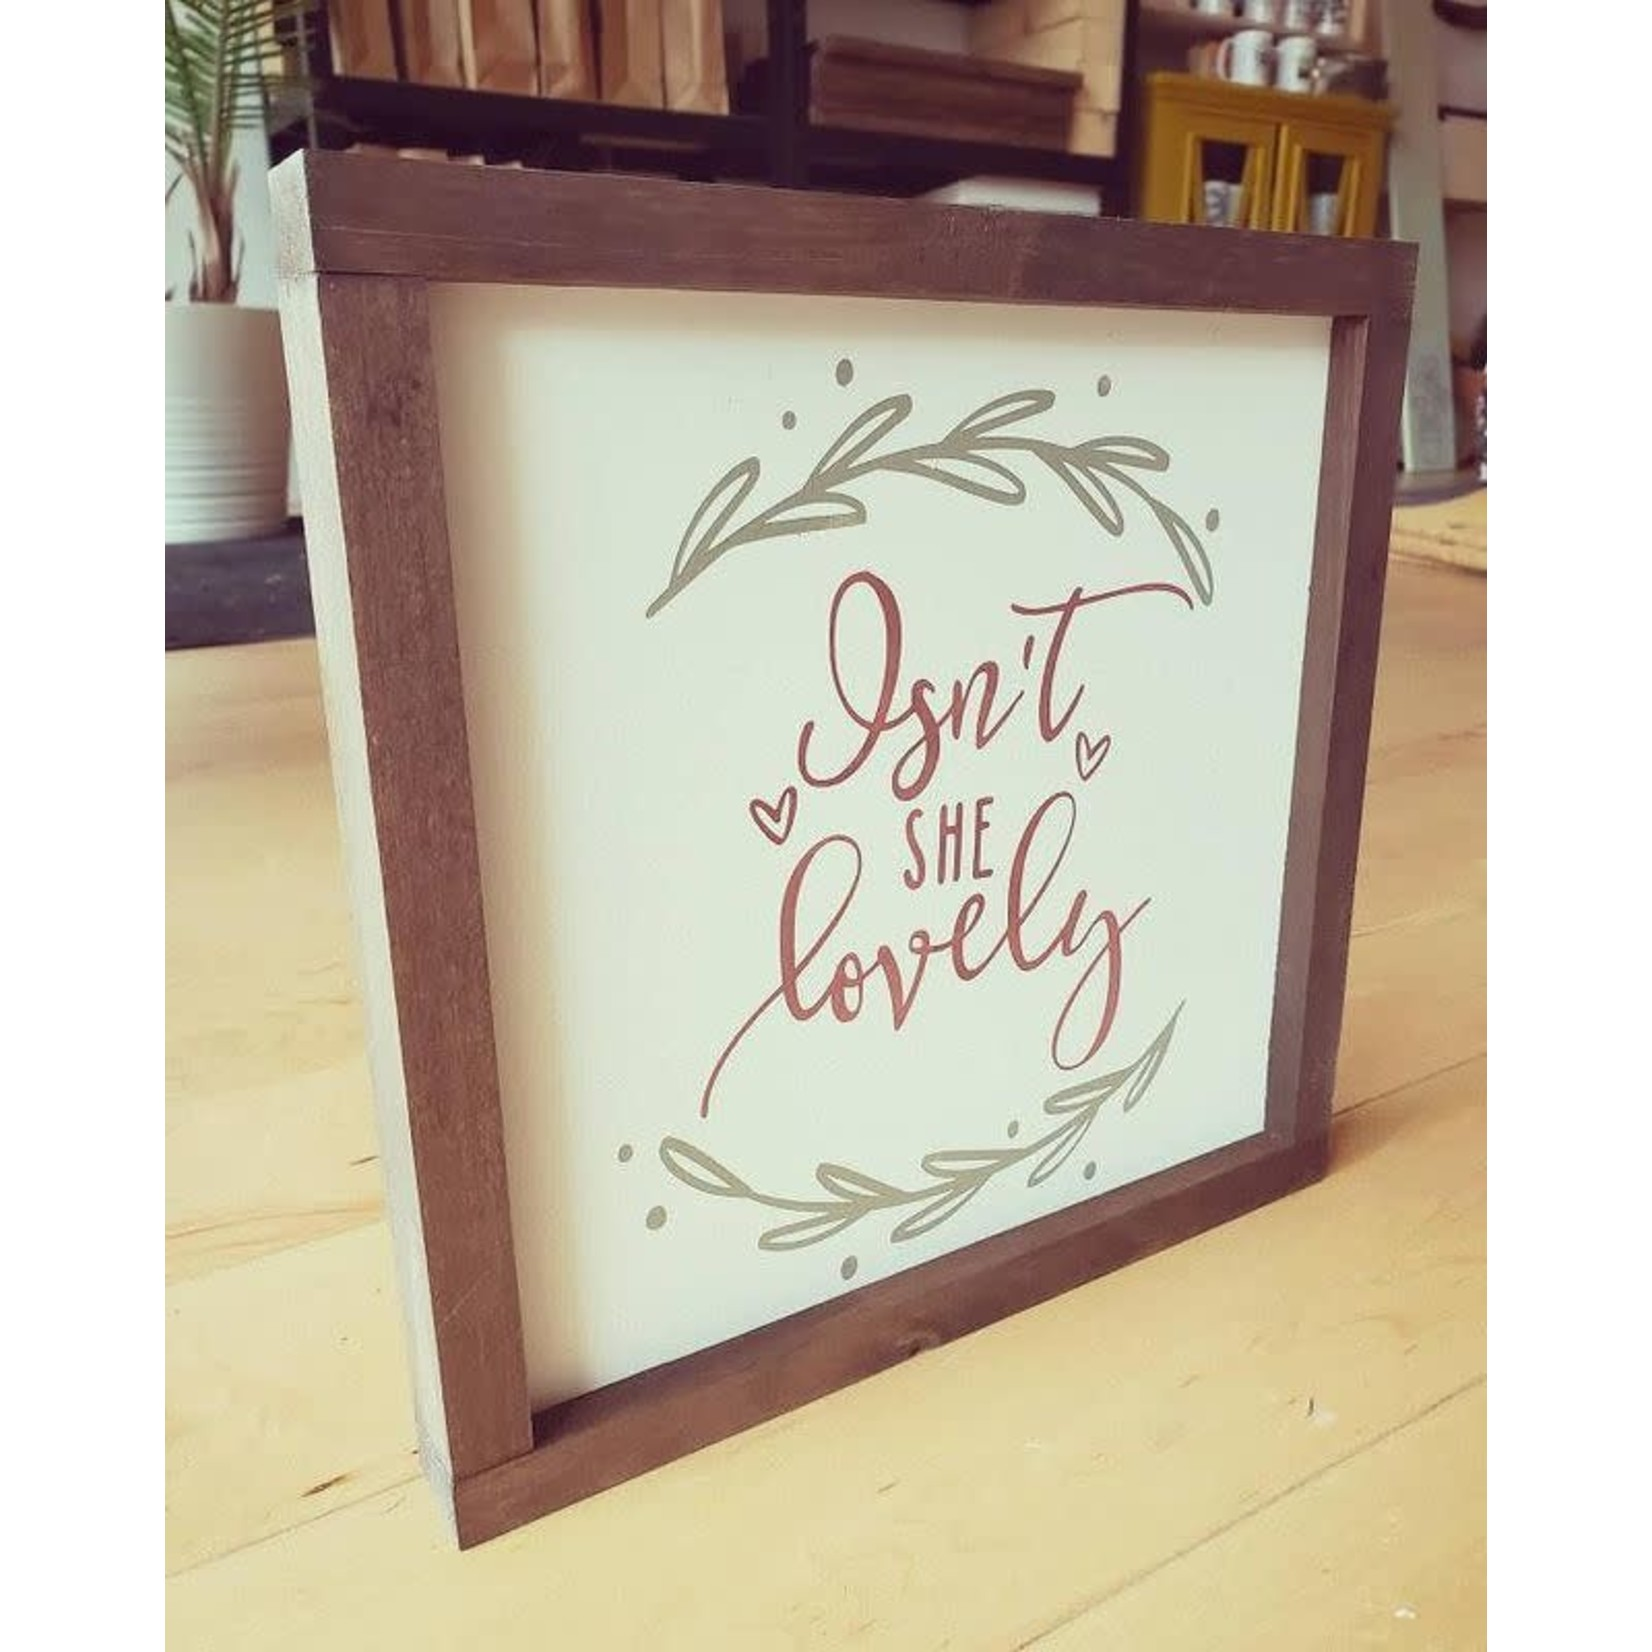 Favourite Things wood Isn't She Lovely 10x10 framed sign